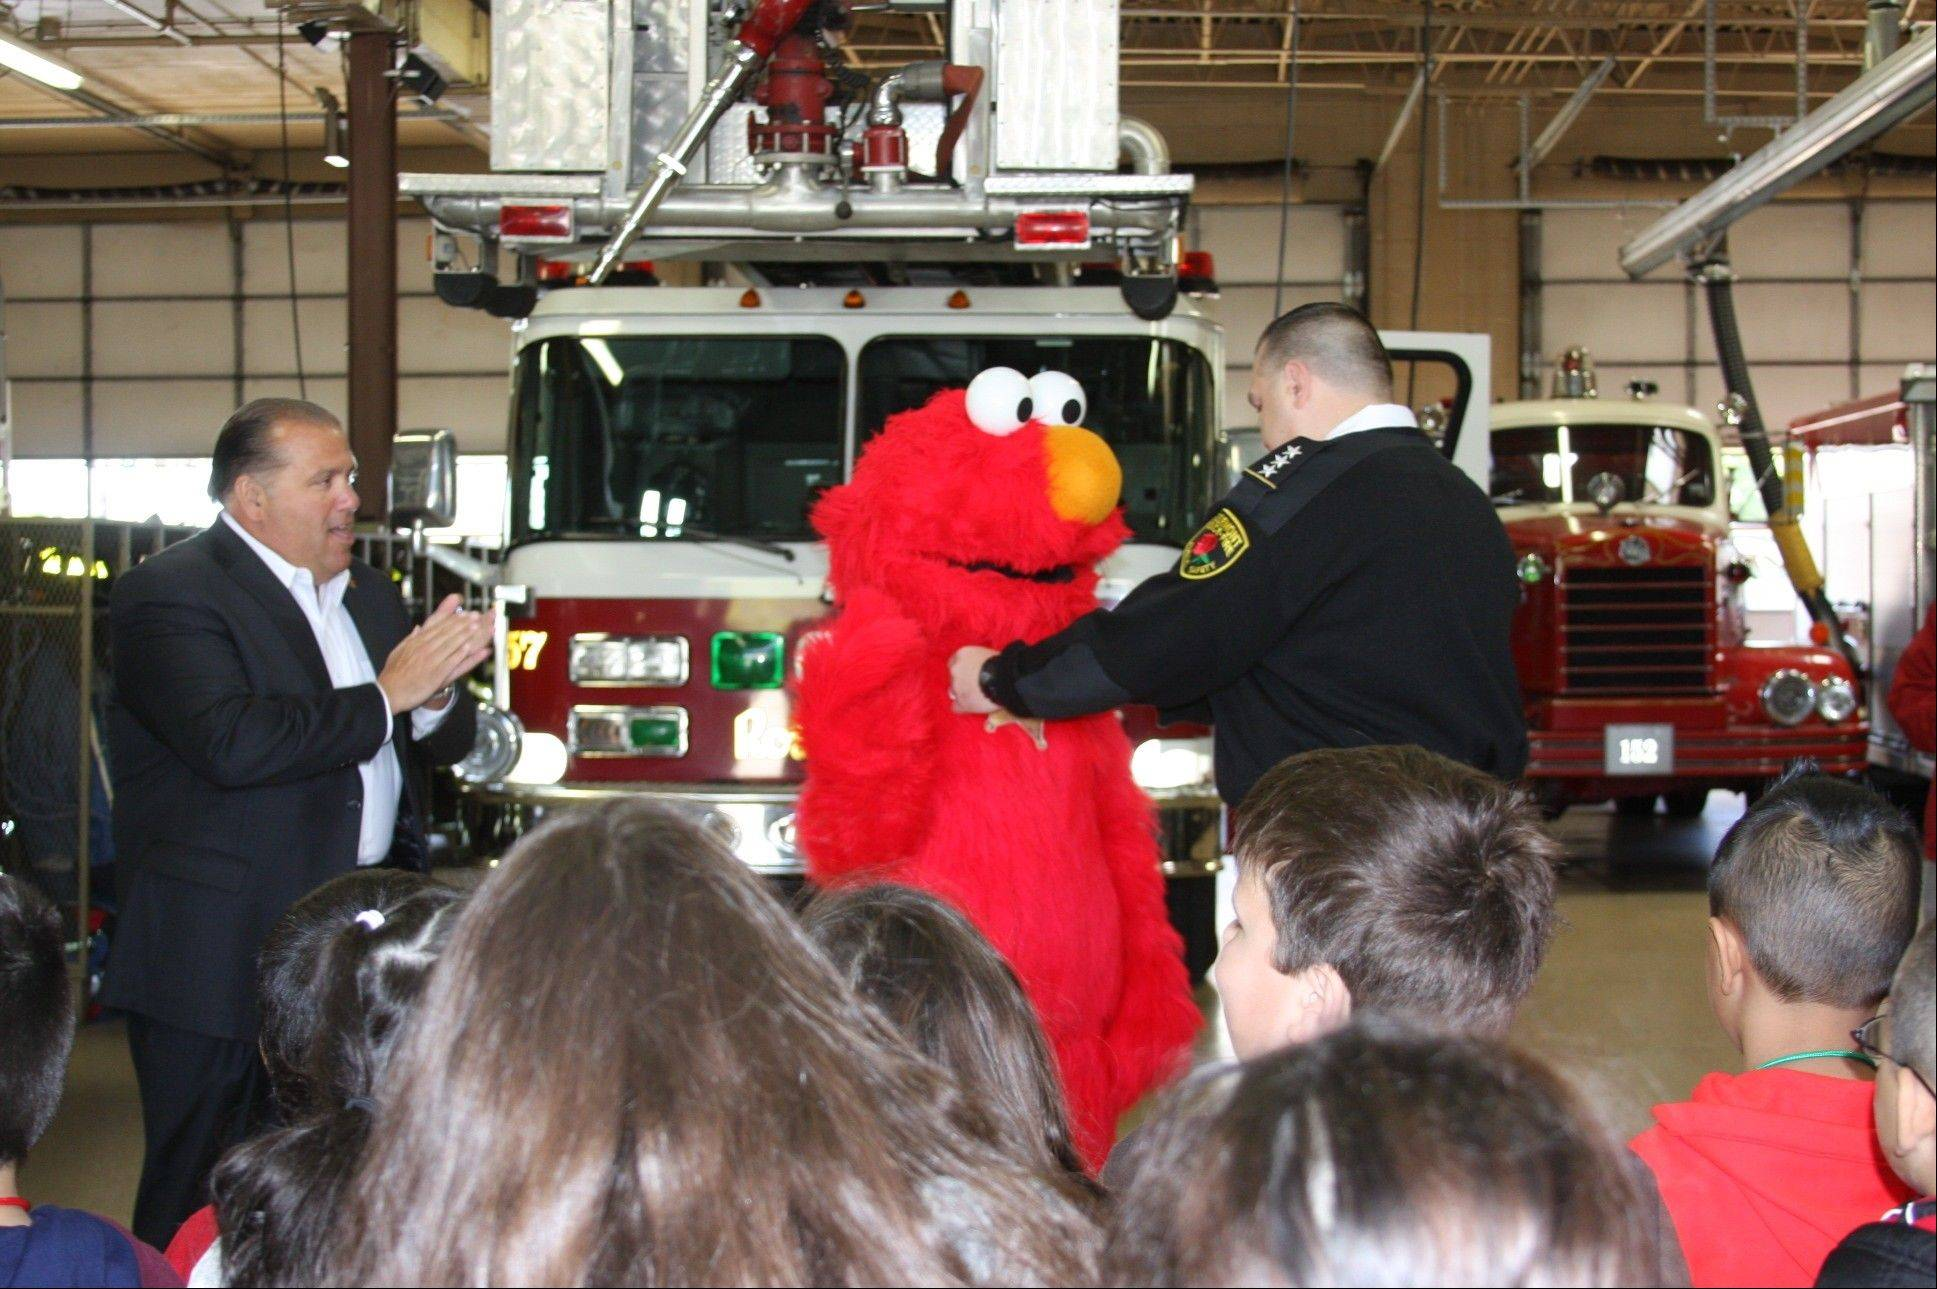 Mayor Brad Stephens and Rosemont Chief of Public Safety Donald Stephens III make Elmo deputy for the day.